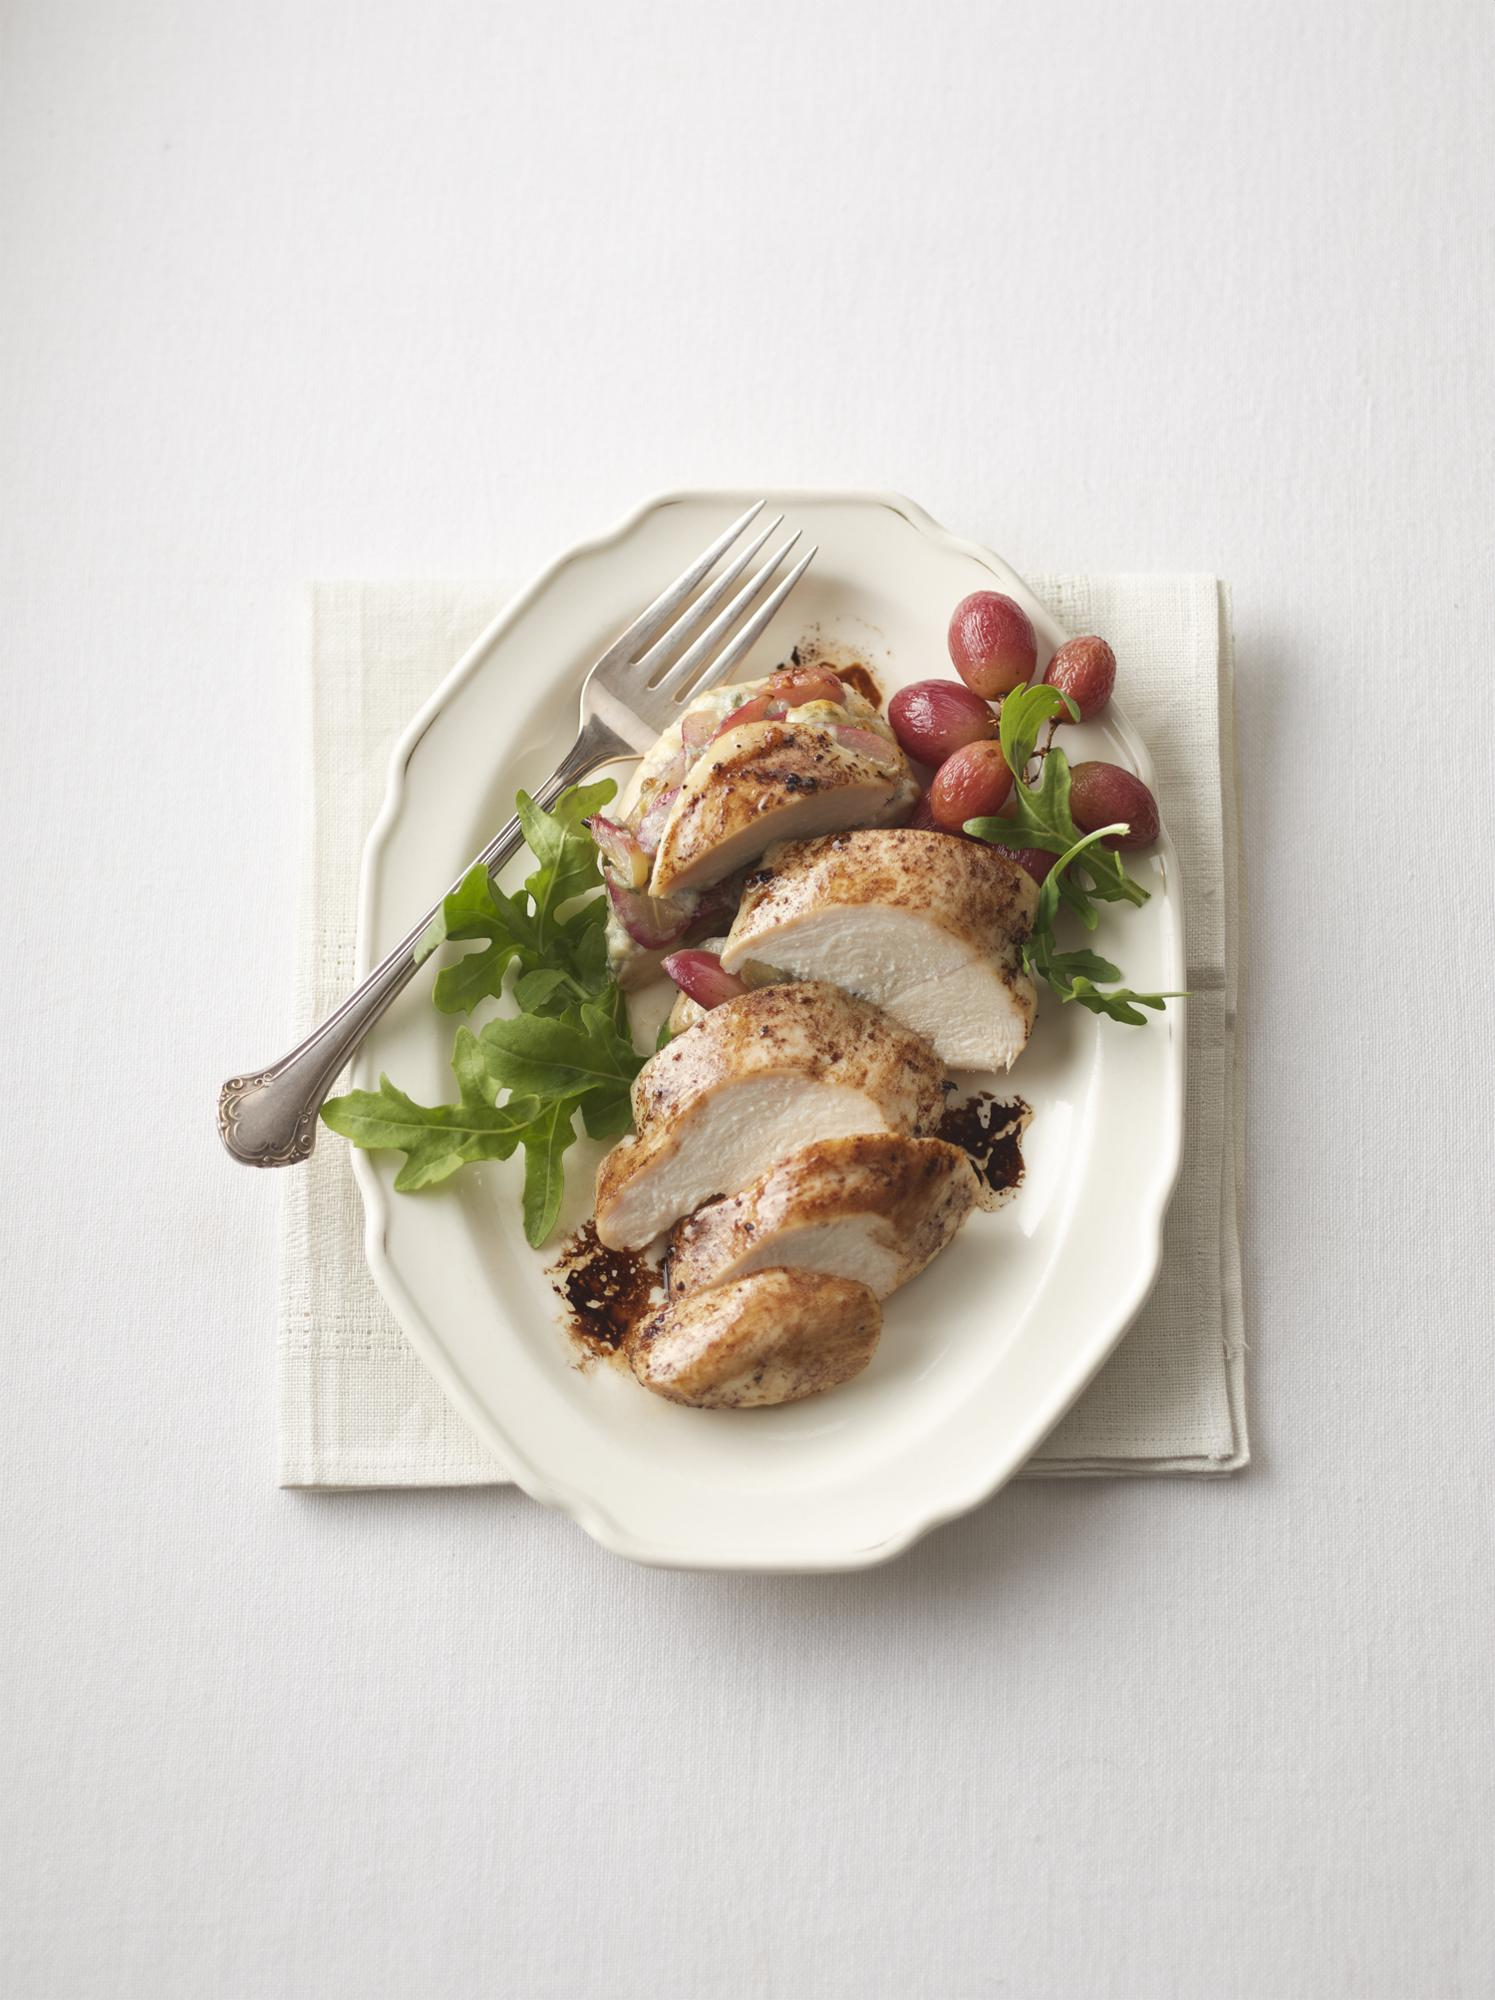 Roasted Grape & Gorgonzola Stuffed Chicken with Balsamic Reduction